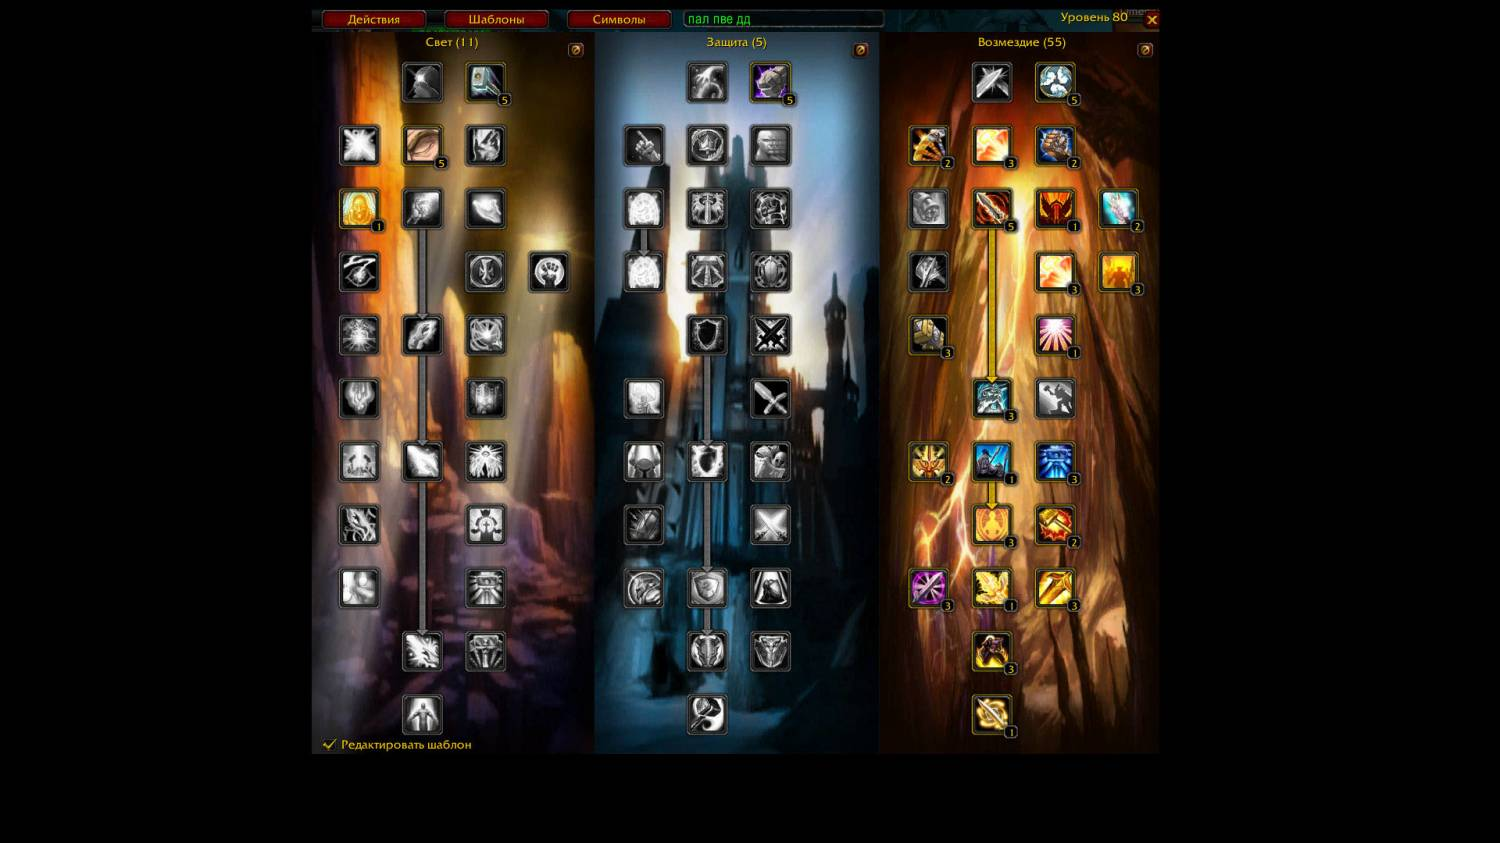 There are many examples of progression throughout the world of warcraft